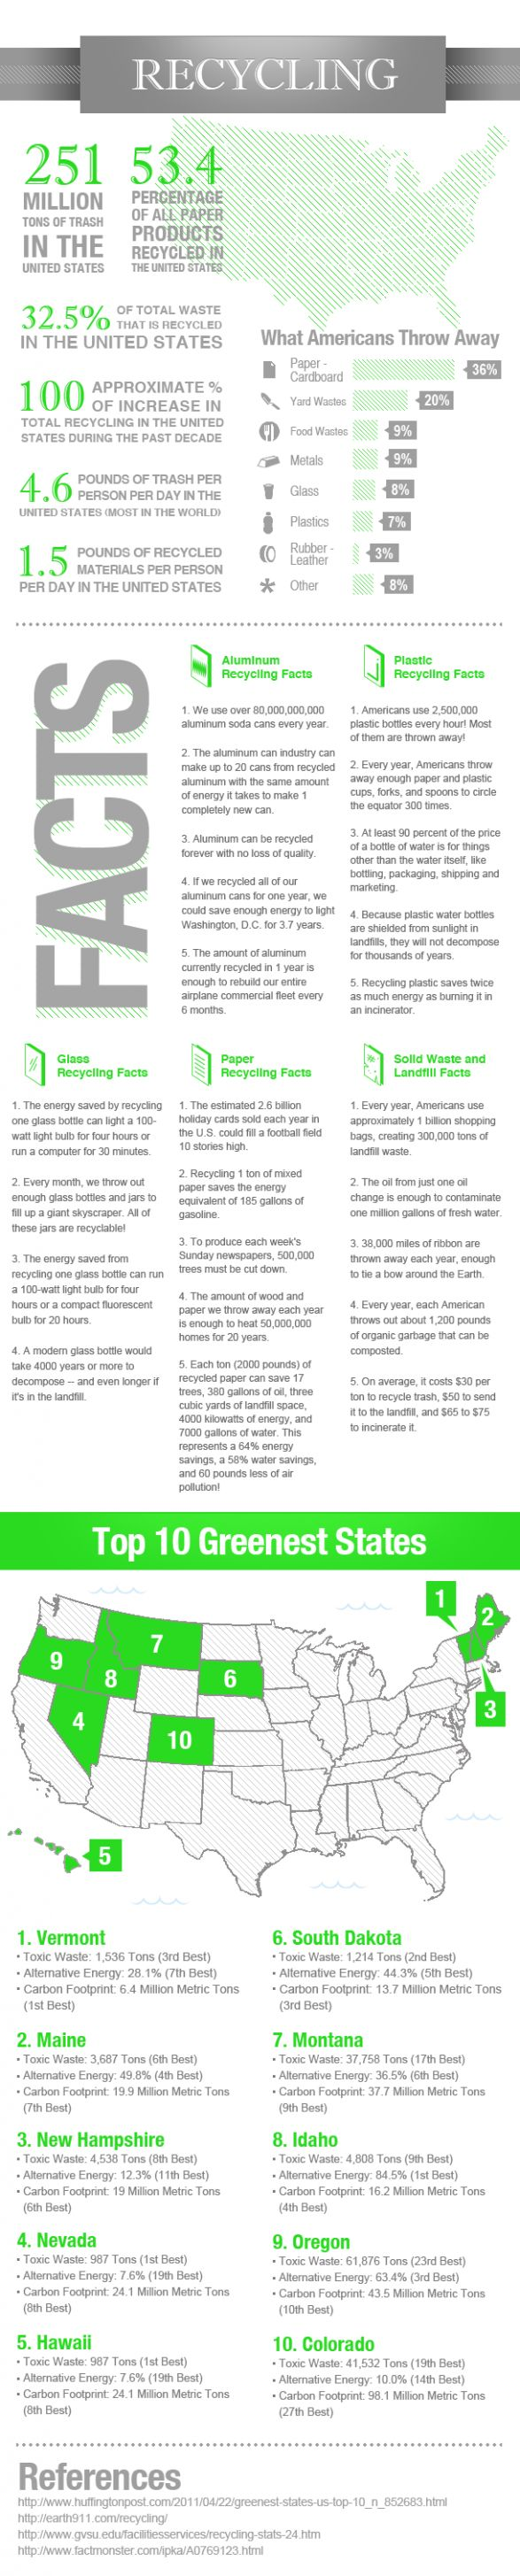 Recycling Facts & Stats